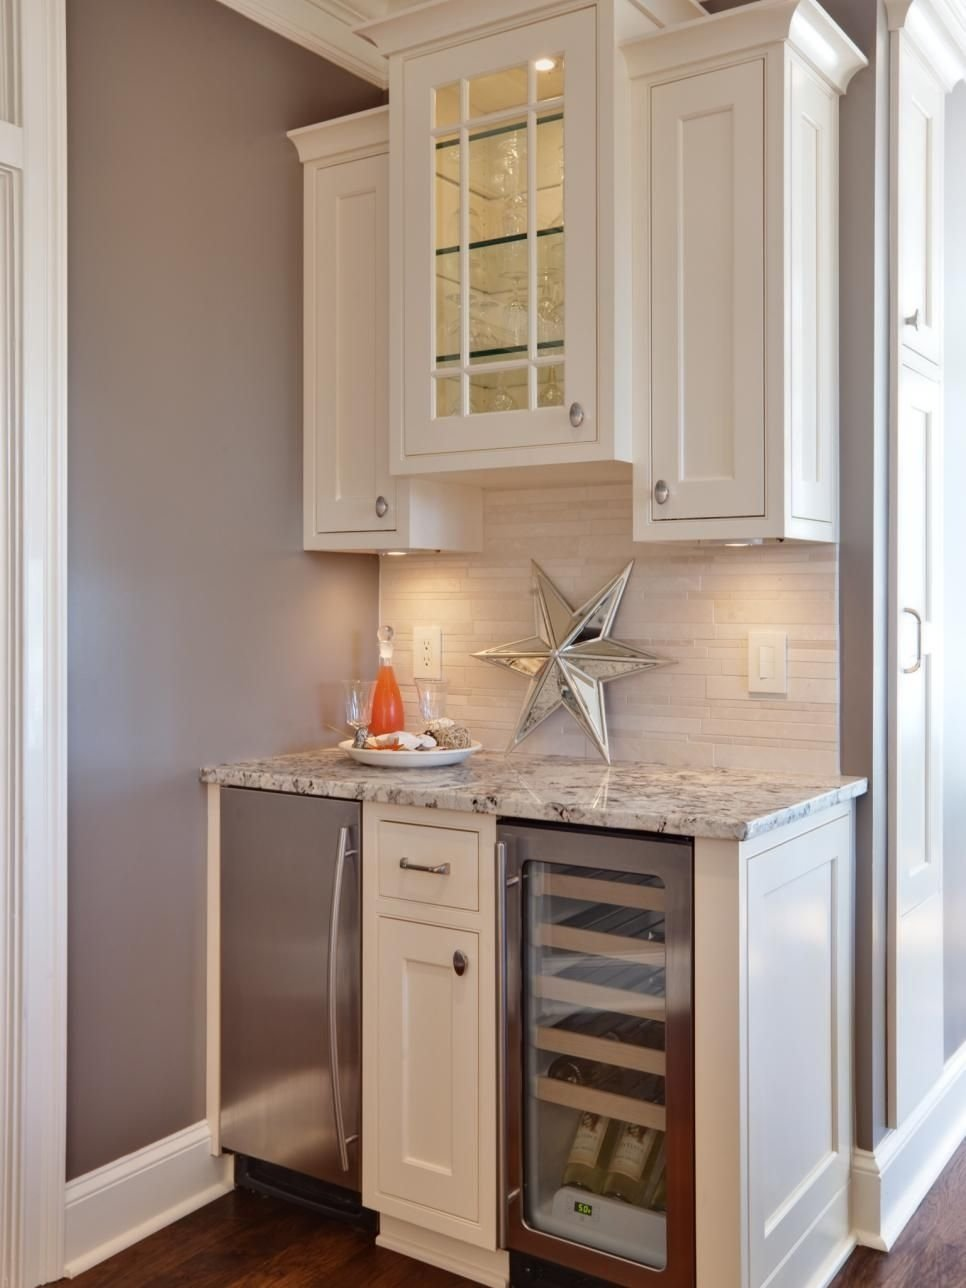 15 stylish small home bar ideas | hgtv, small spaces and stylish